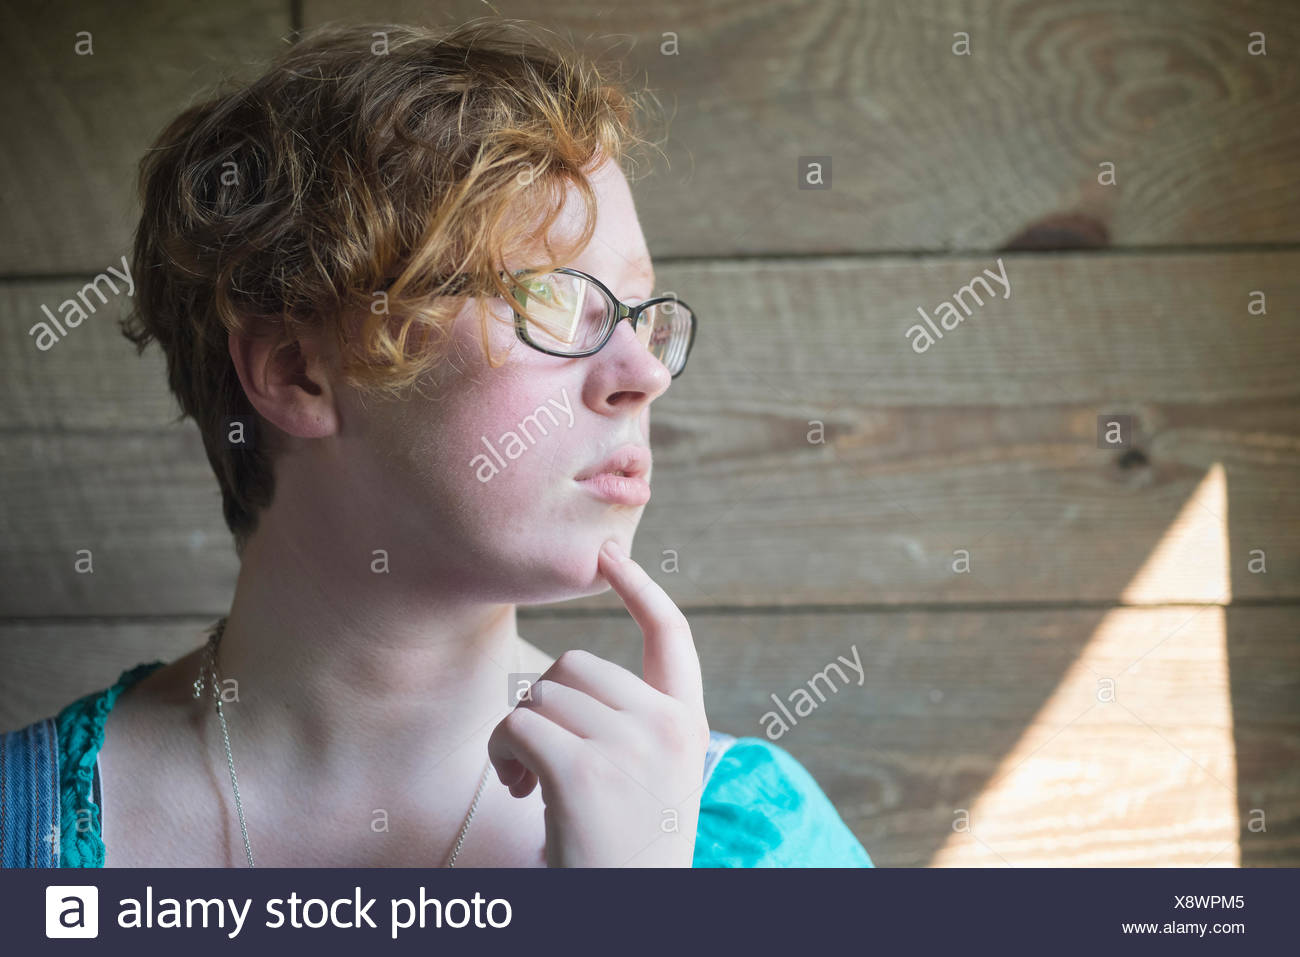 Portrait of a girl with curly red hair and eyeglasses standing against an old, wooden barn wall; Pittsboro, North Carolina, USA - Stock Image